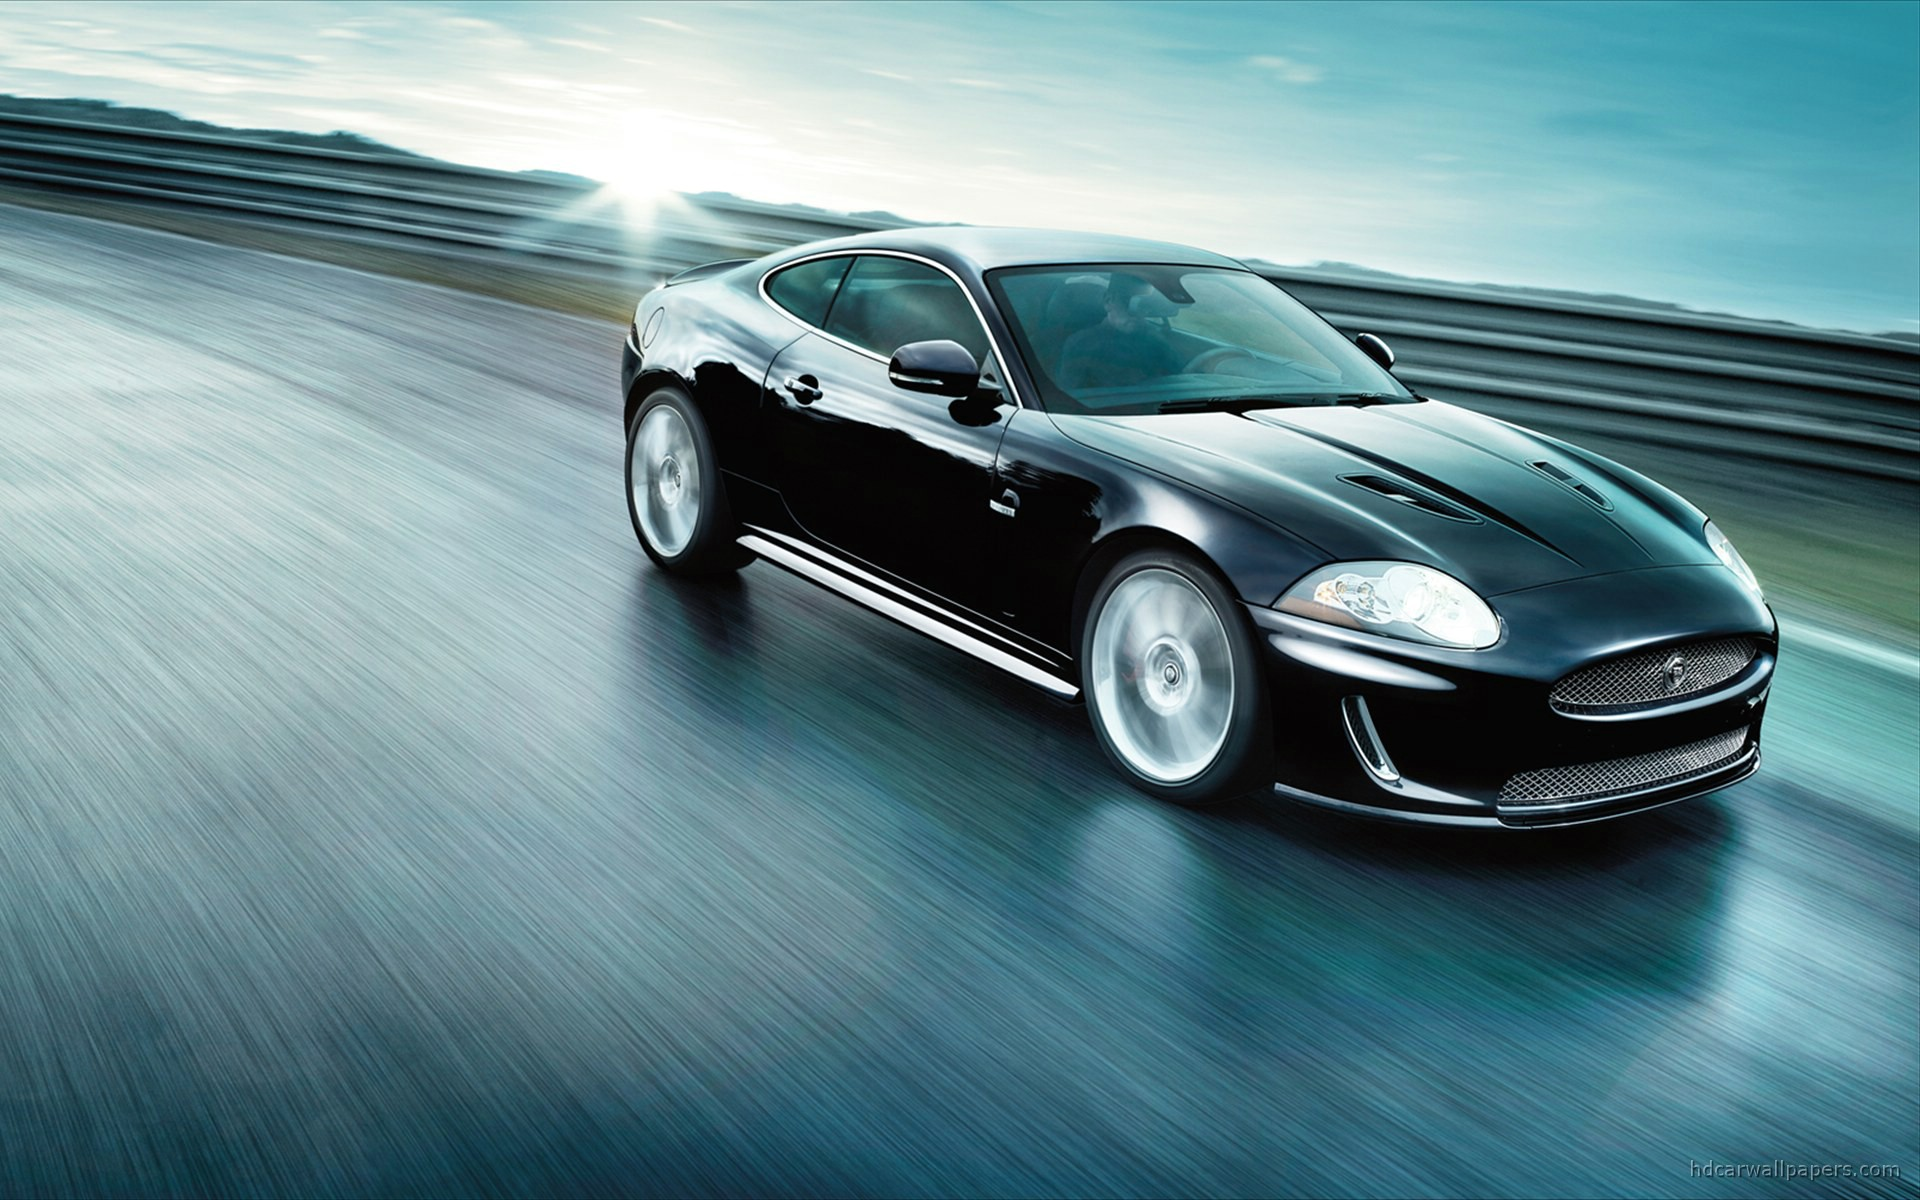 2011 jaguar xkr175 wallpaper | hd car wallpapers | id #1611